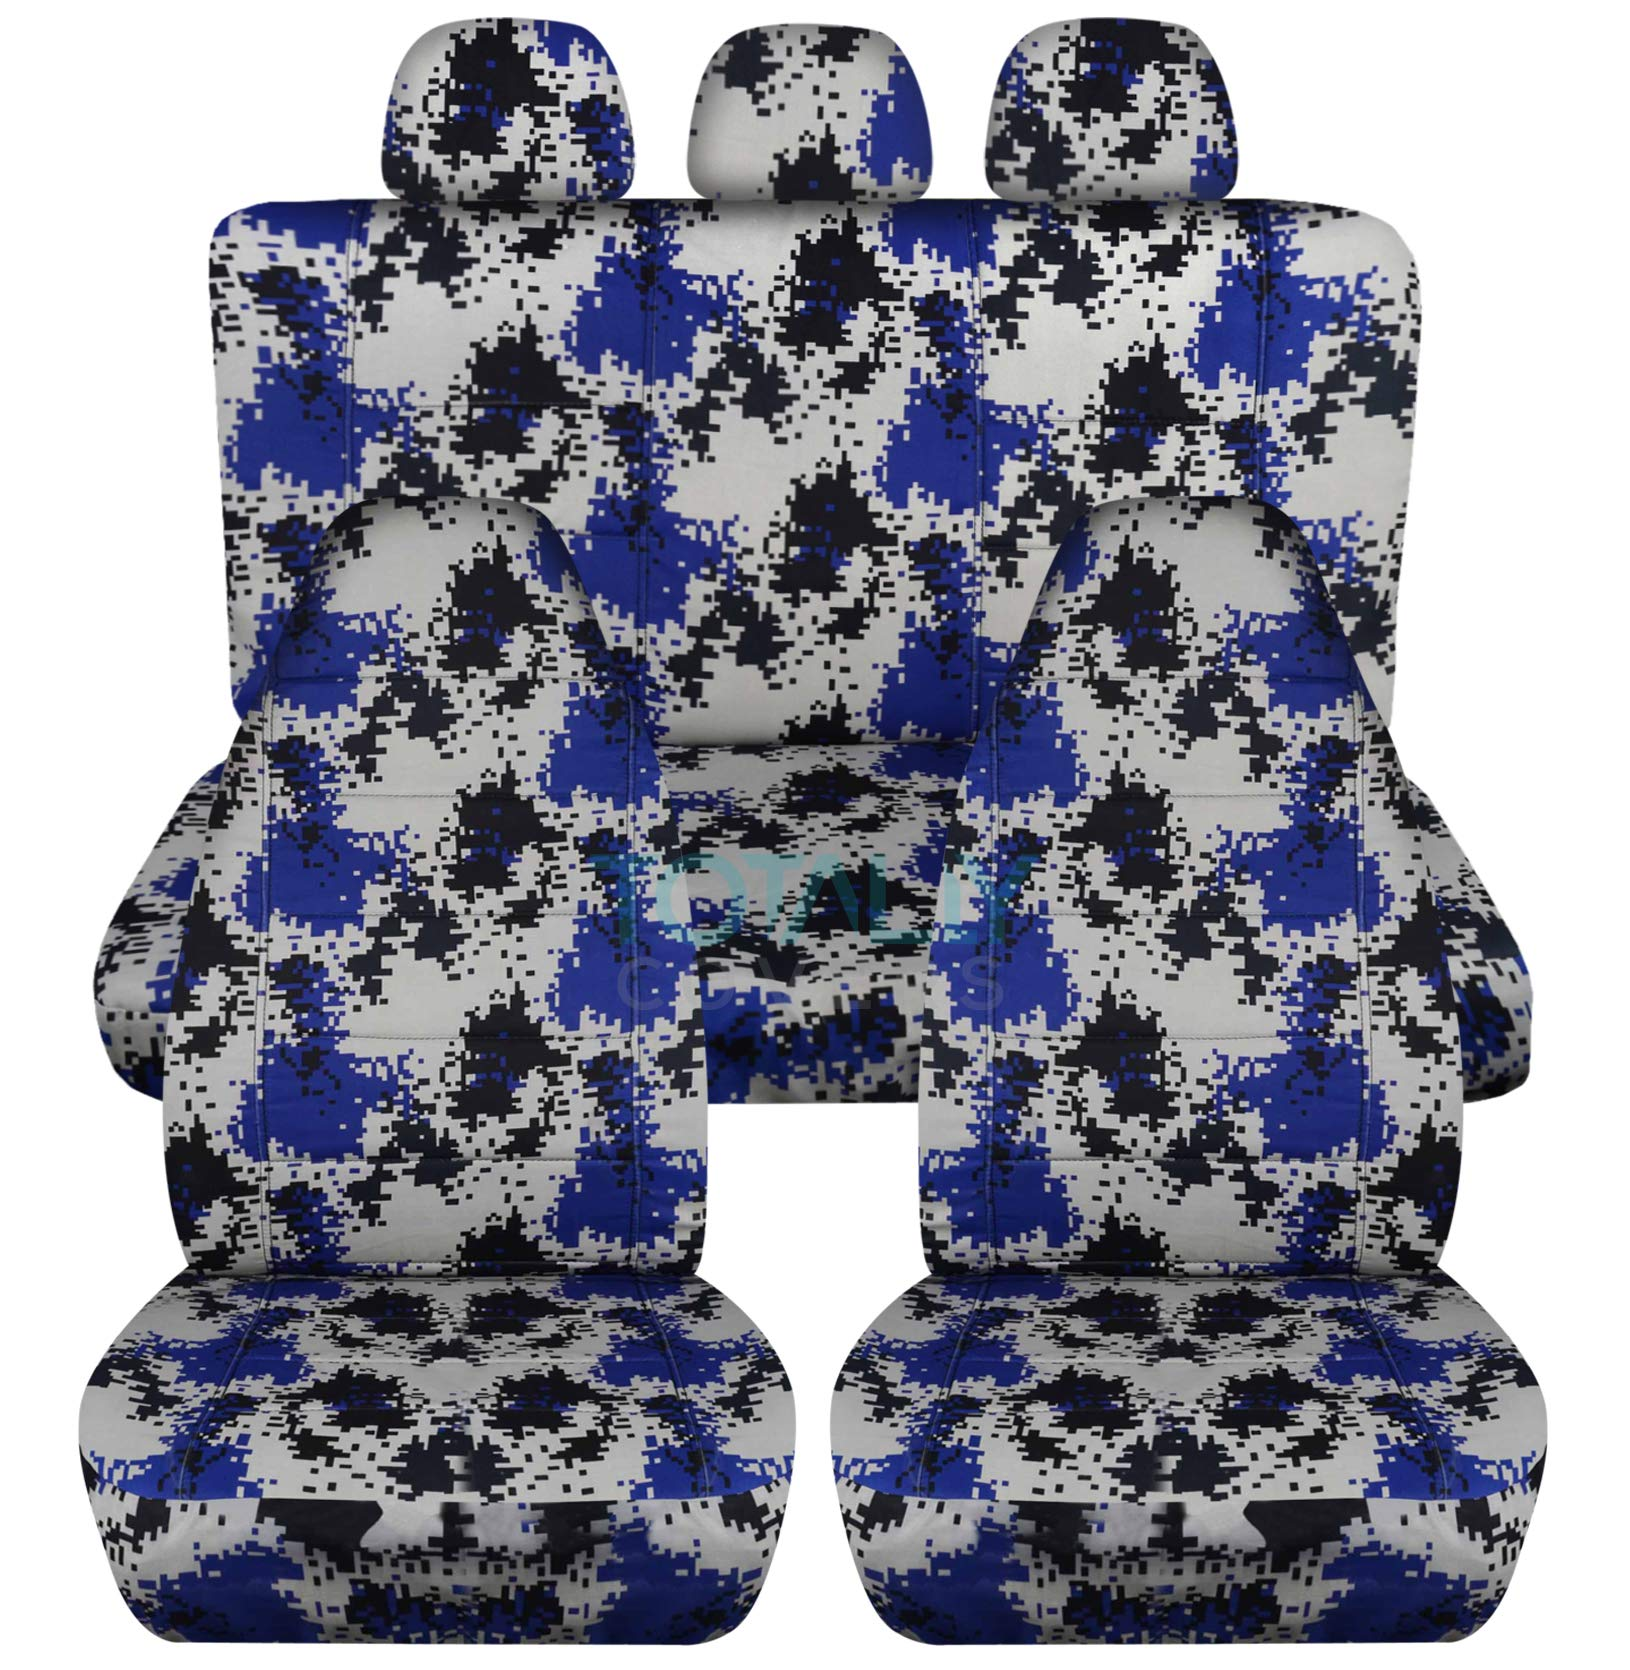 Camouflage Car Seat Covers w 3 Rear Headrest Covers: White & Blue Digital Camo - Semi-Custom Fit - Full Set - Will Make Fit Any Car/Truck/Van/SUV (22 Prints)